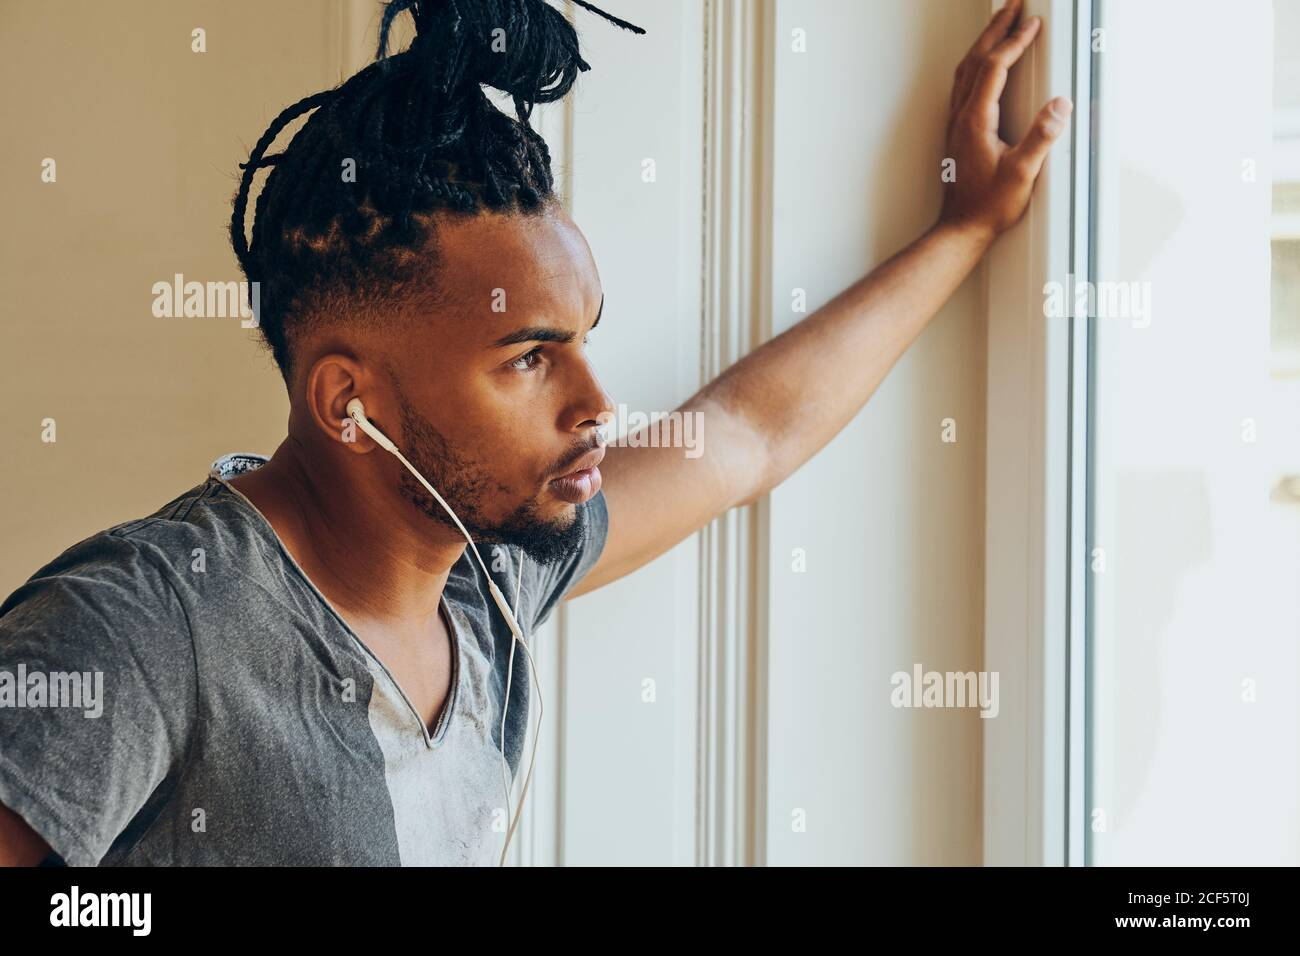 Side view of serious ethnic man with creative hairstyle listening to music and leaning on window frame Stock Photo